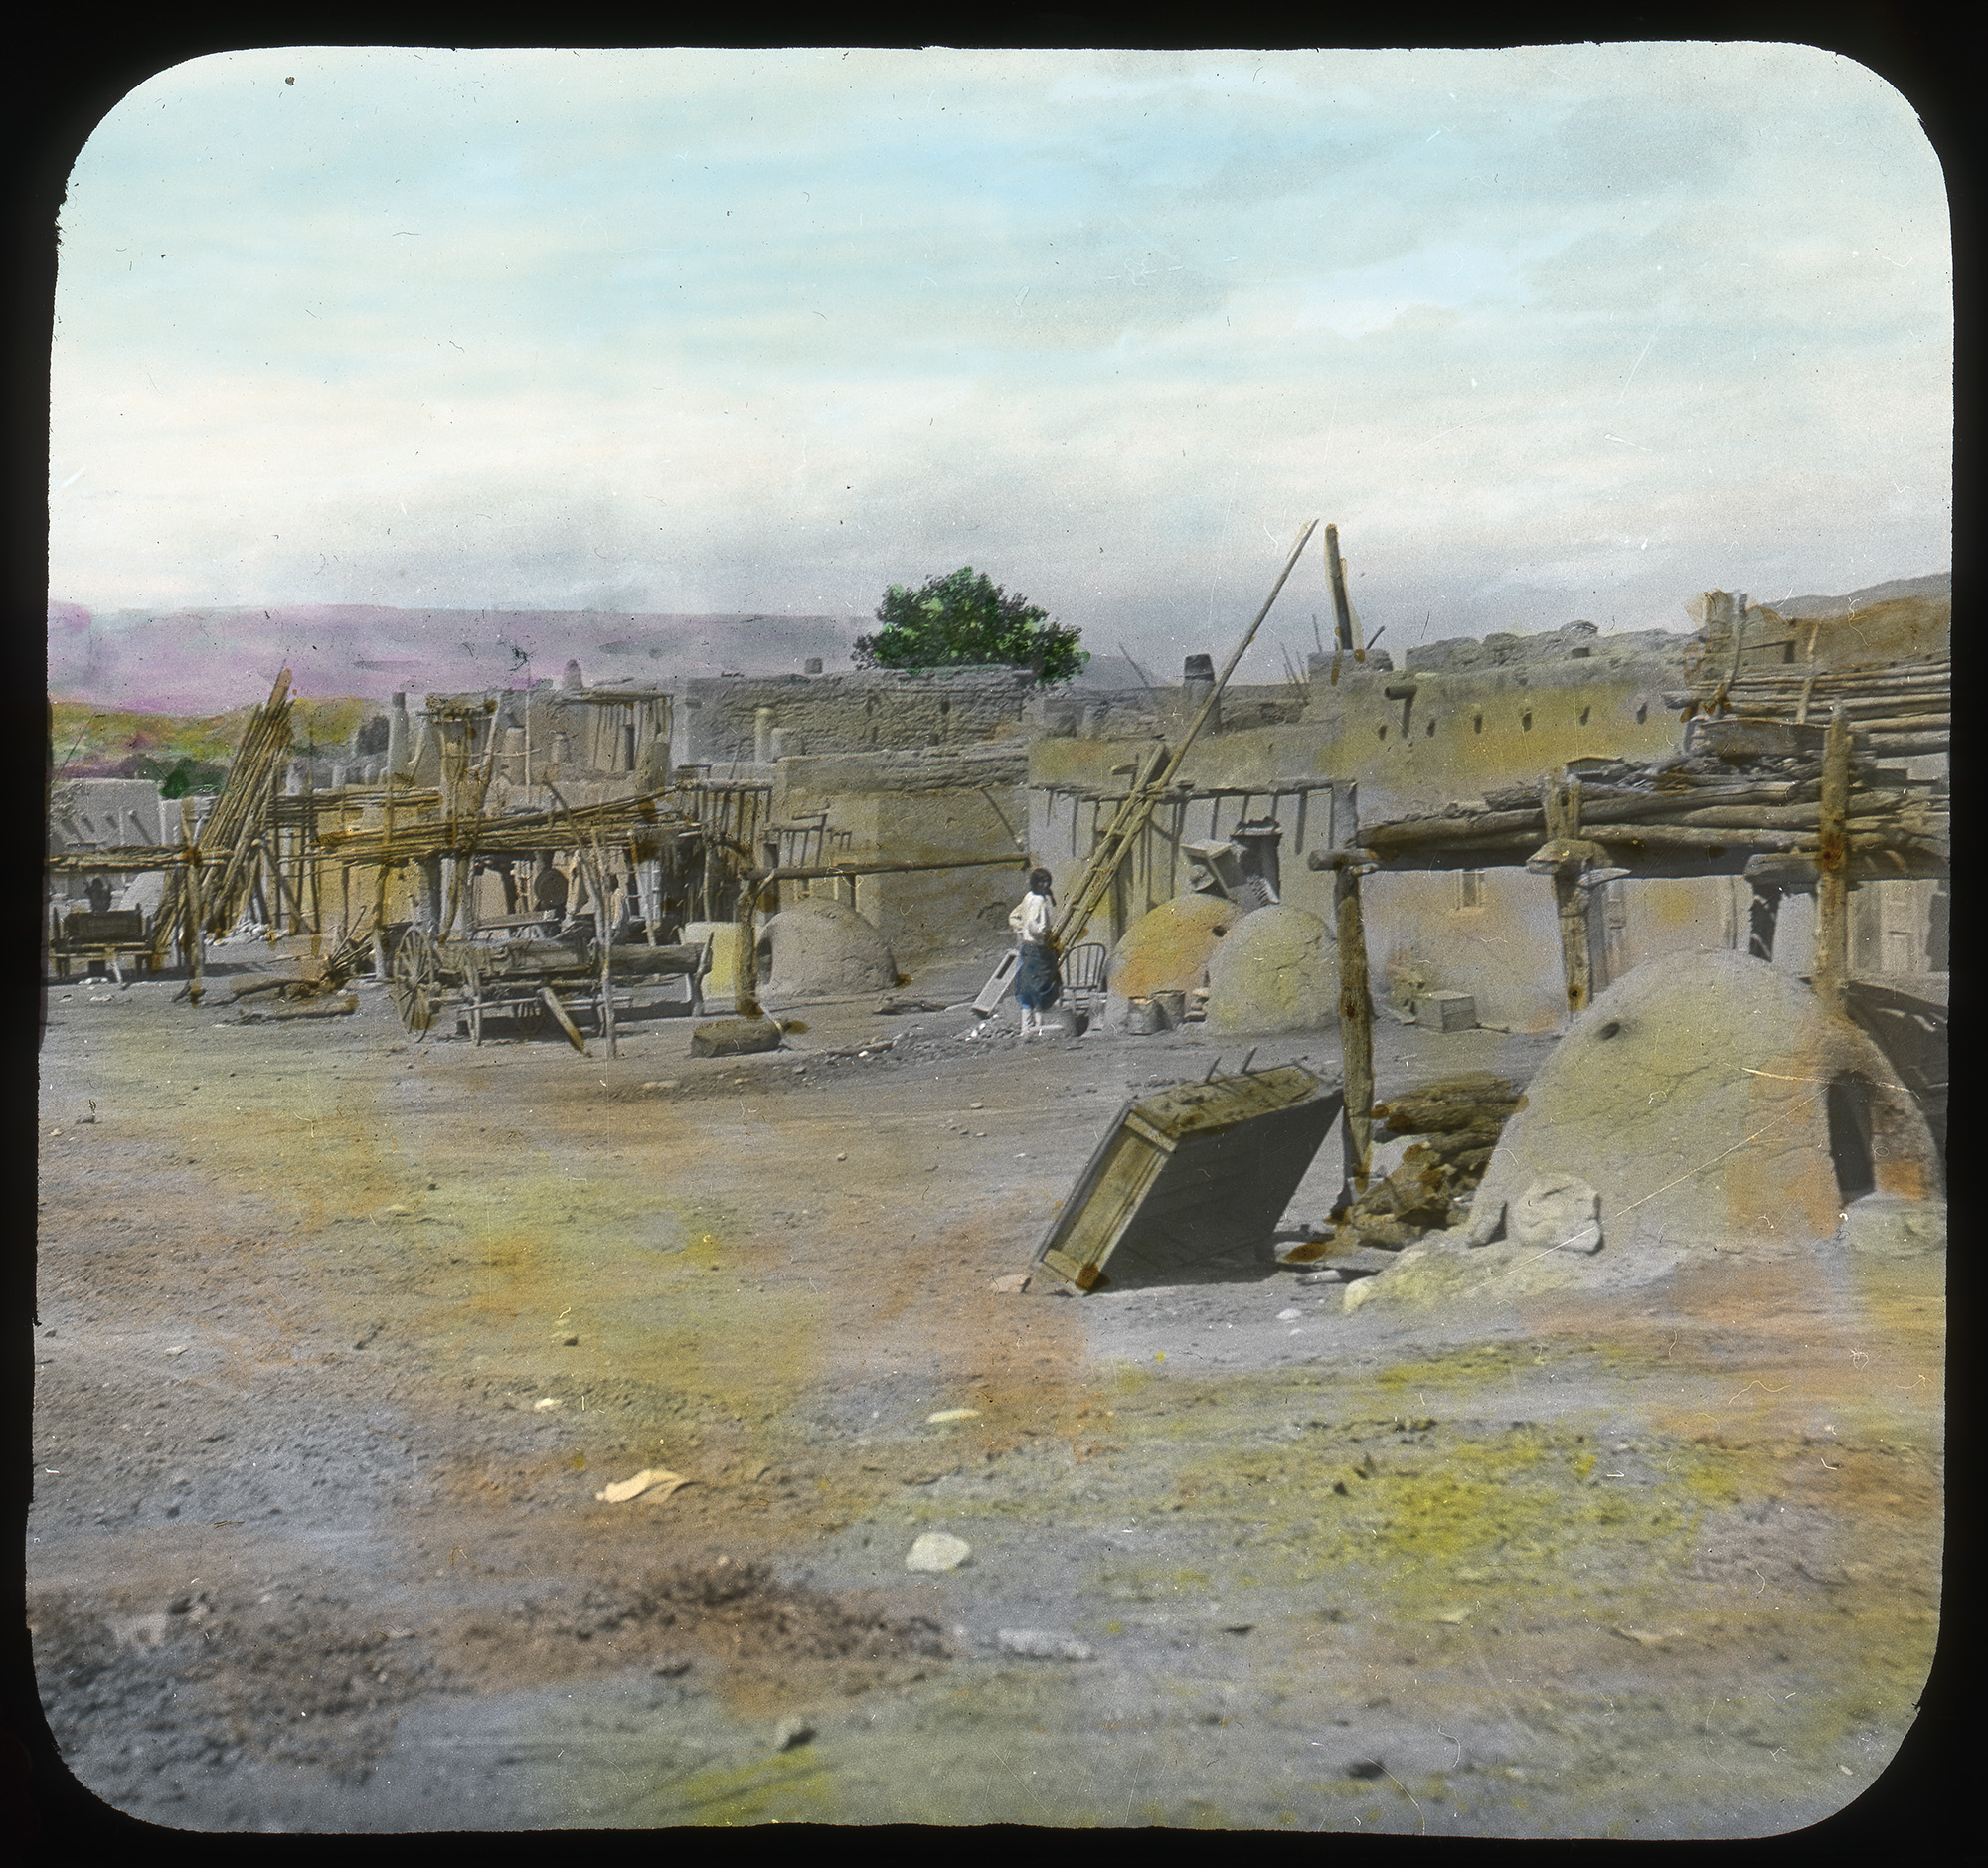 A pueblo in the desert of the southwest United States.